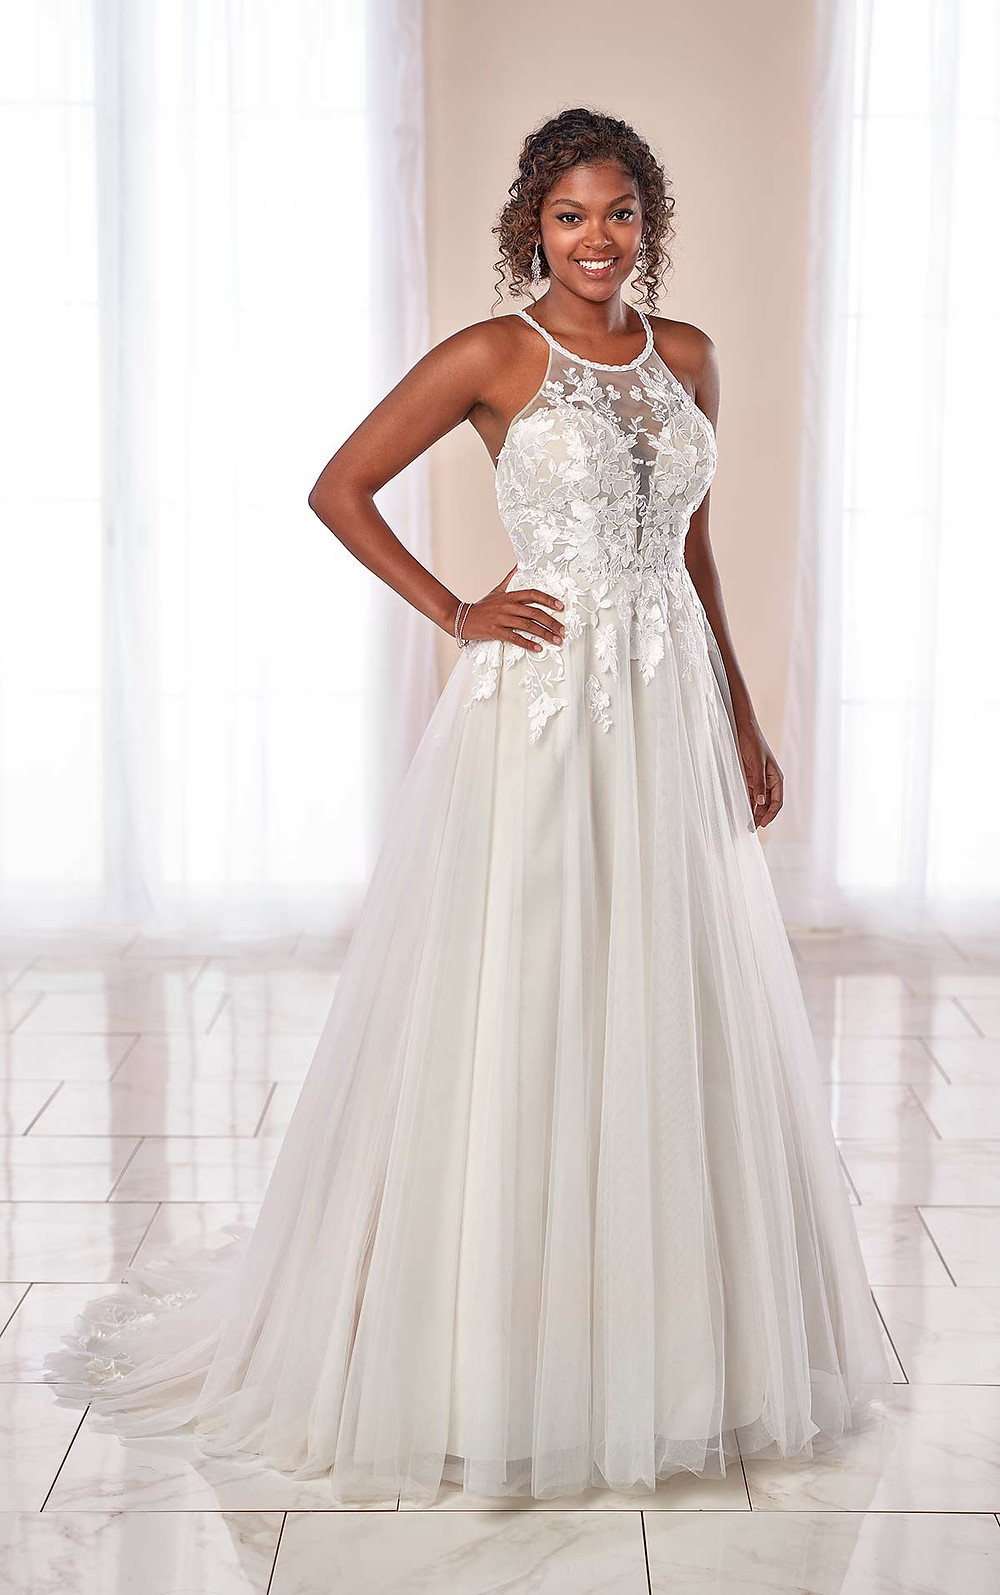 A Stella York 2020 light grey halterneck lace and mesh A-line wedding dress